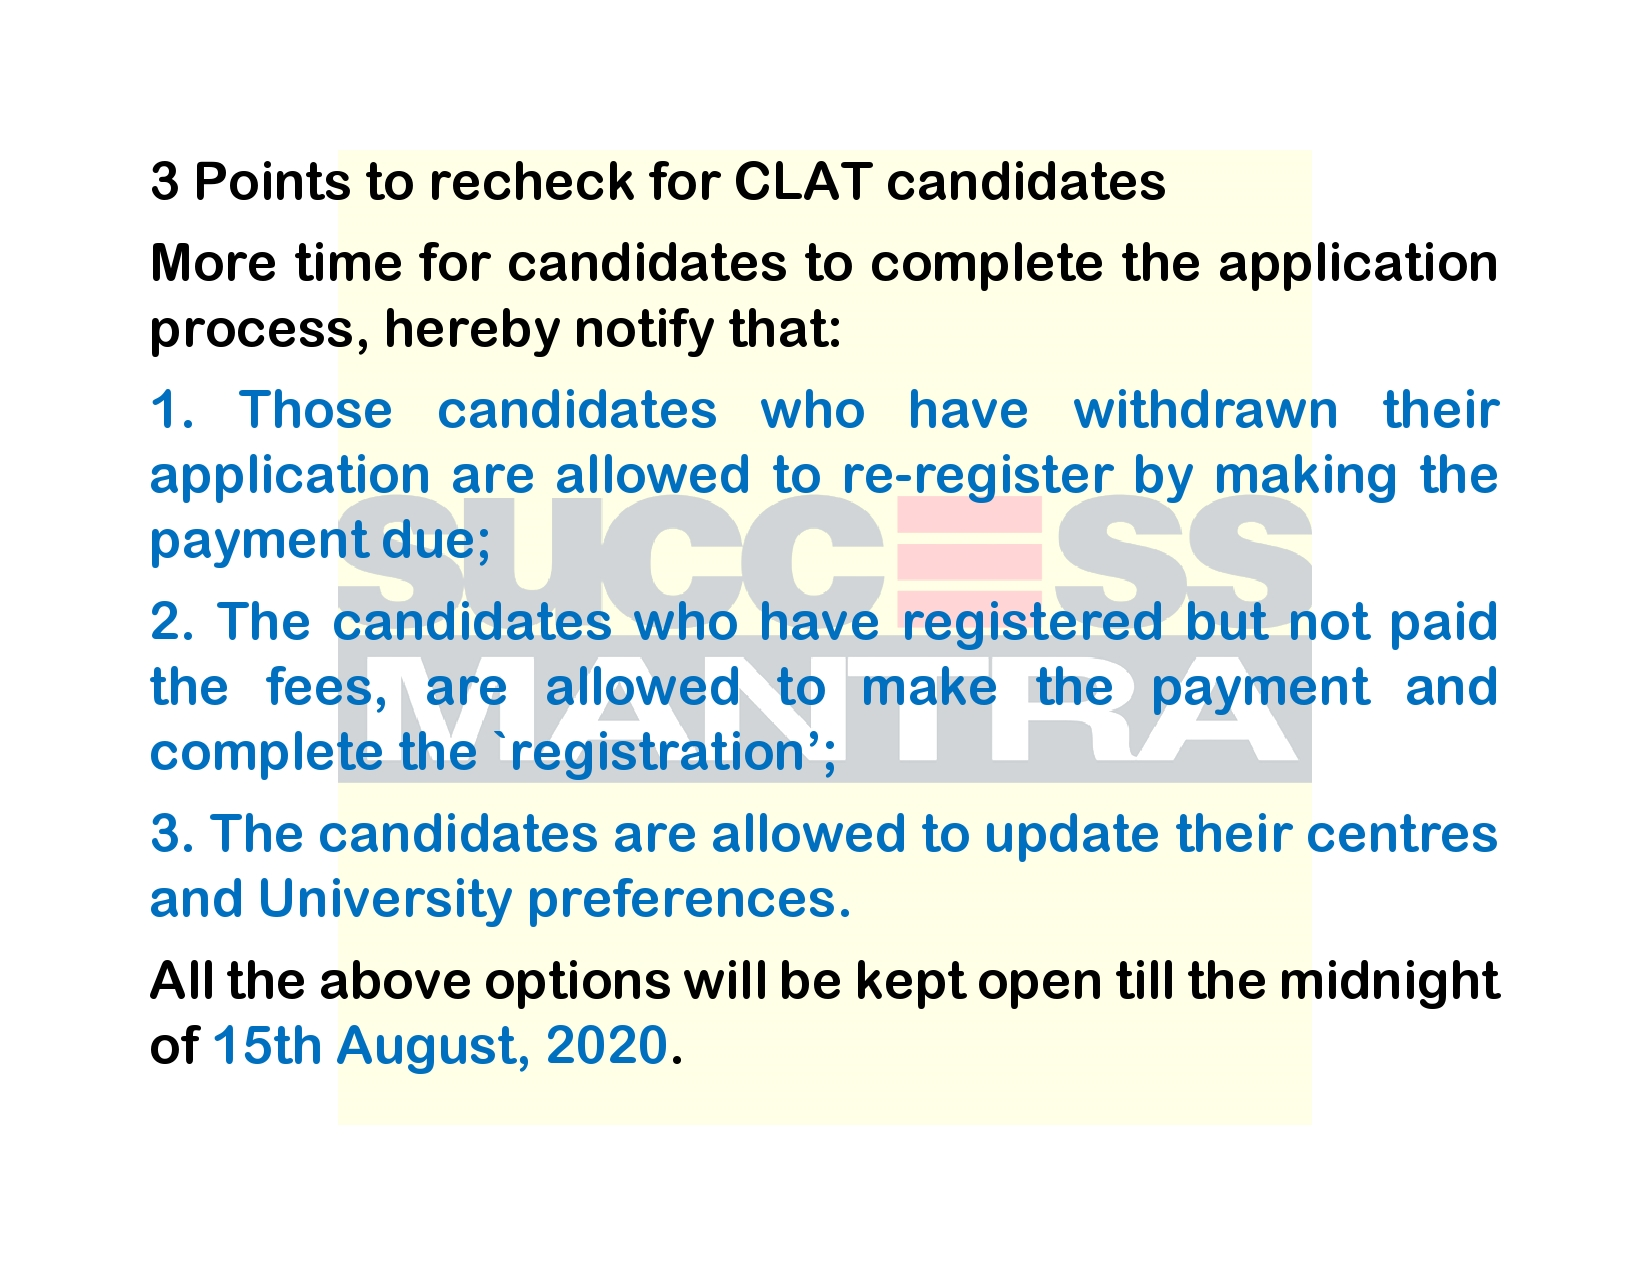 3 Points to recheck for CLAT candidates before 15th August 2020, Success Mantra GTB Nagar Coaching Institute For CLAT AILET DU LLB LAW